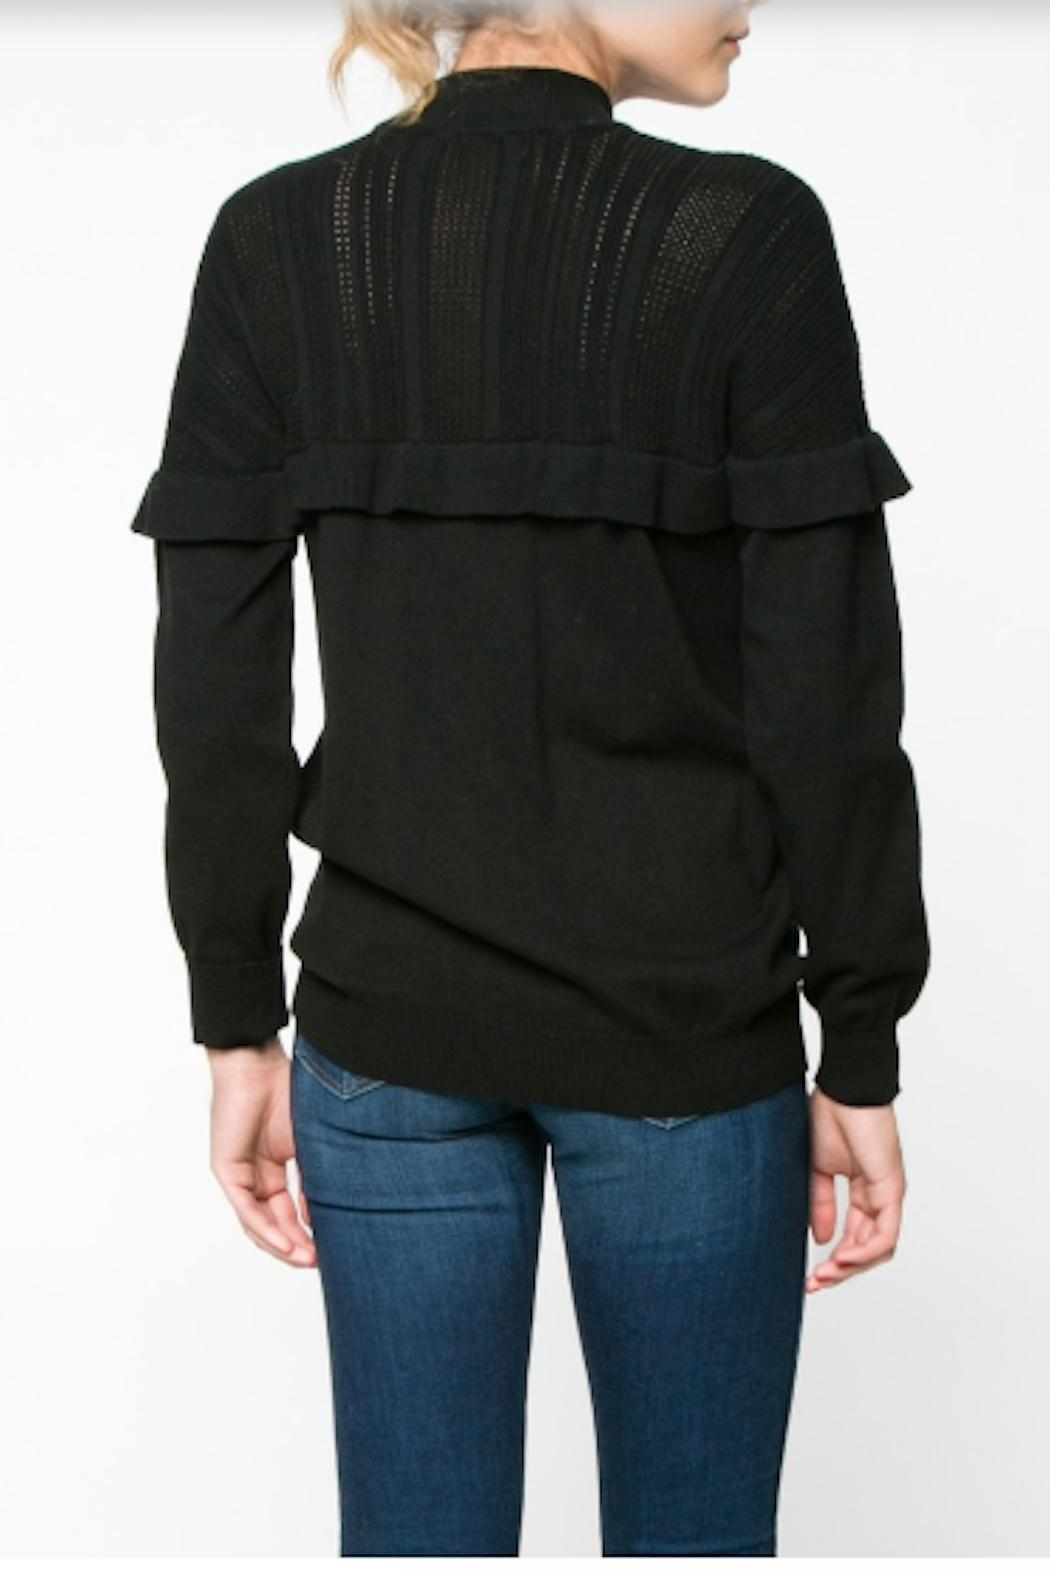 Everly Ruffle Sweater - Side Cropped Image